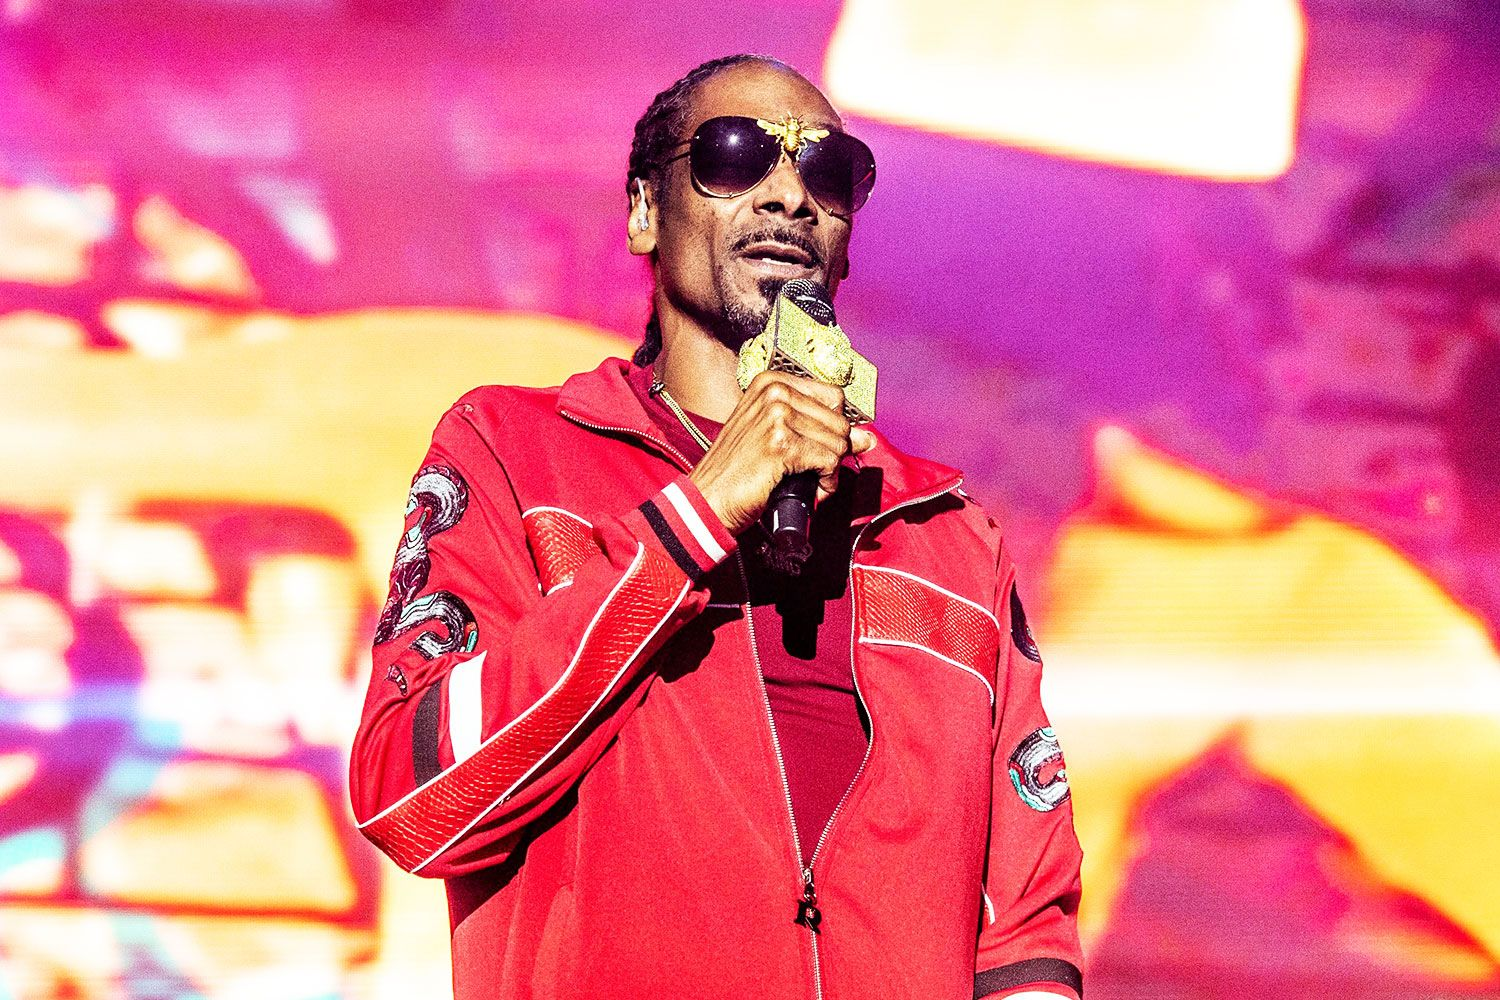 Redemption Of A Dogg Stage Play Starring Snoop Dogg And Tamar Braxton